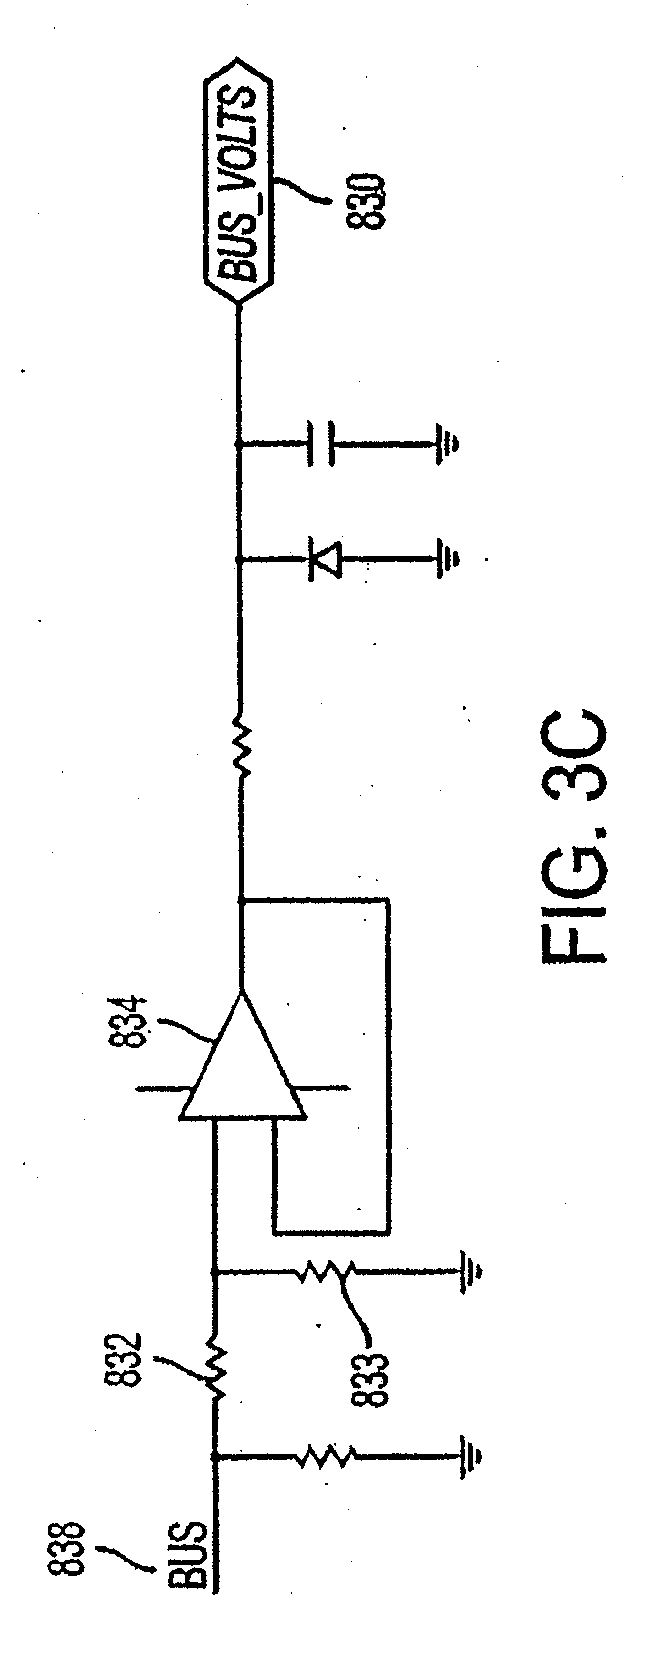 Patente Us20110288789 Alternator Battery System Tester And Method 5 Mt Cranking Motor Of No Load Test Schematic Circuit Patent Drawing